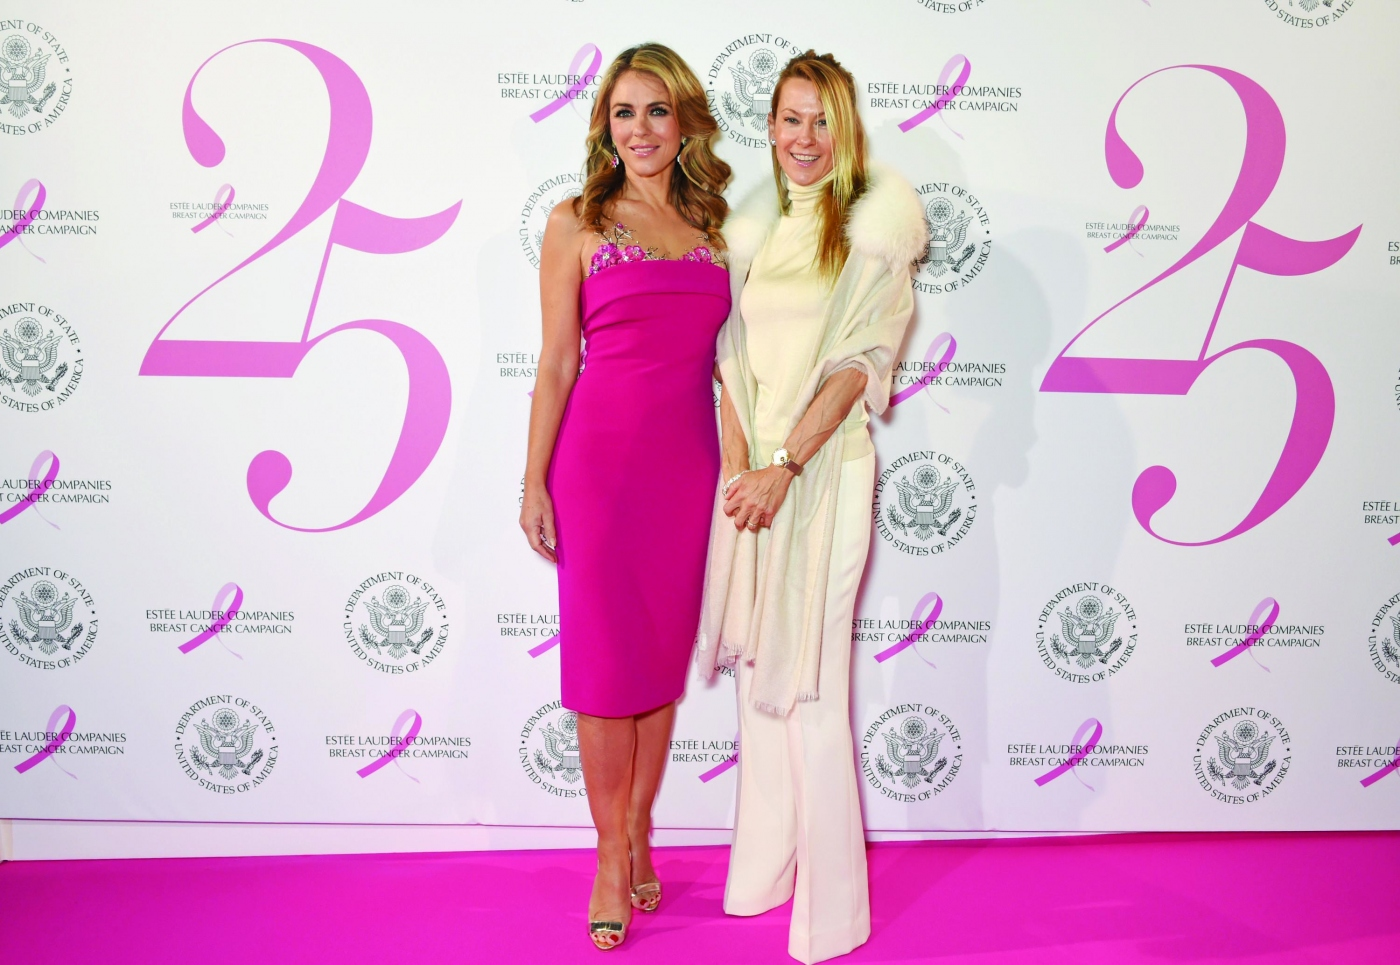 [ Evénement ] 25th Anniversary of the Breast Cancer Campaign